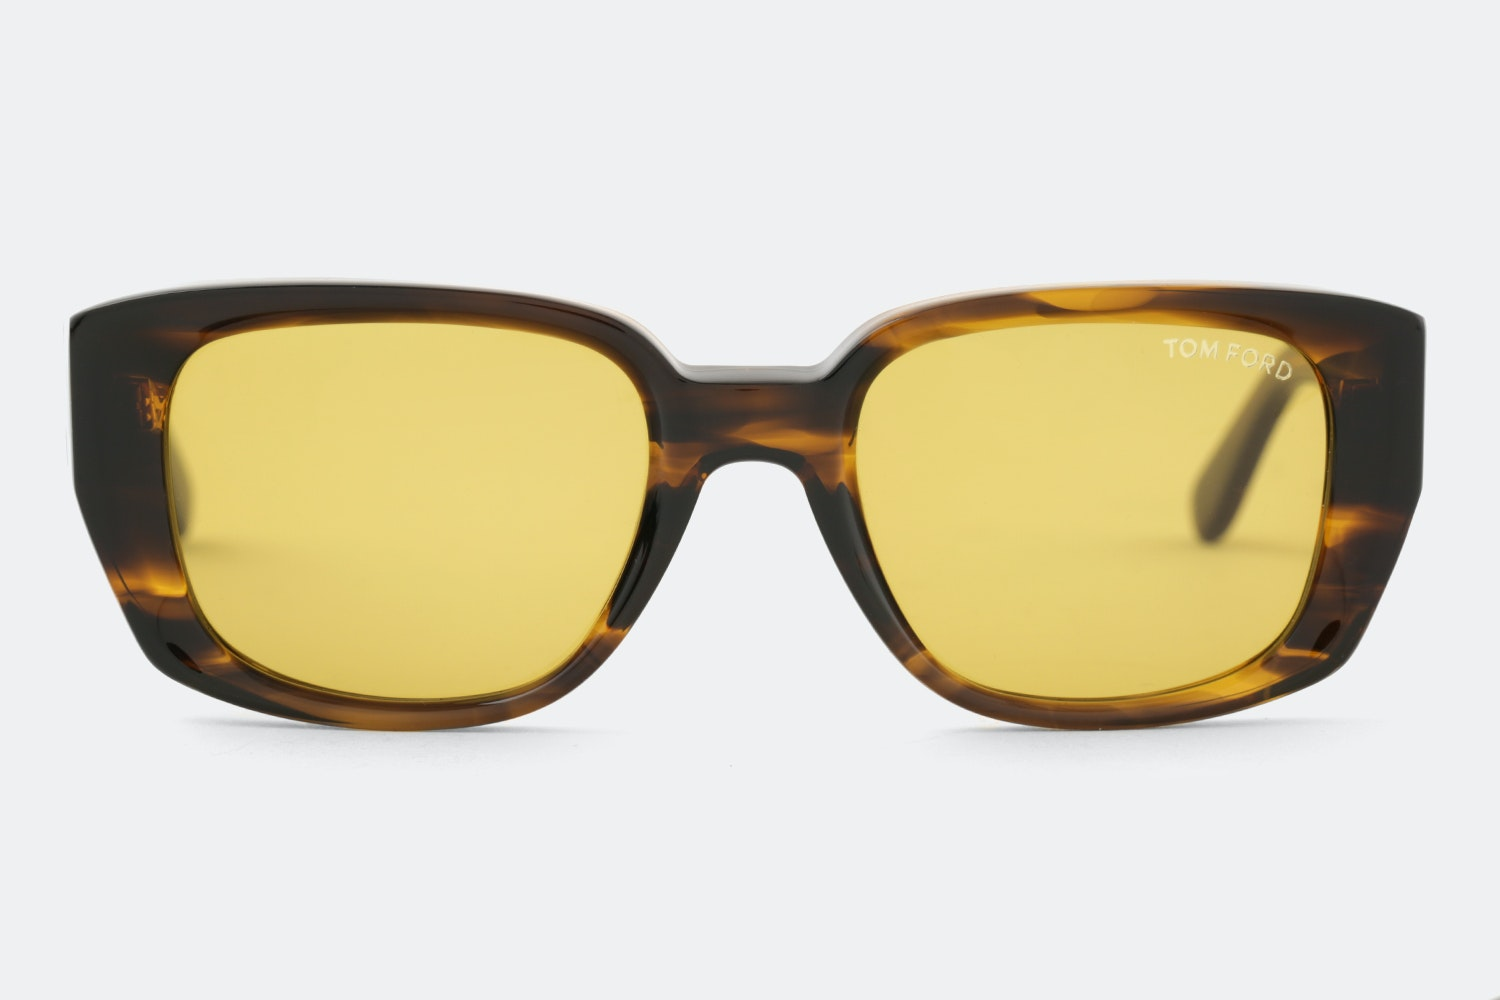 Tom Ford Raphael Sunglasses